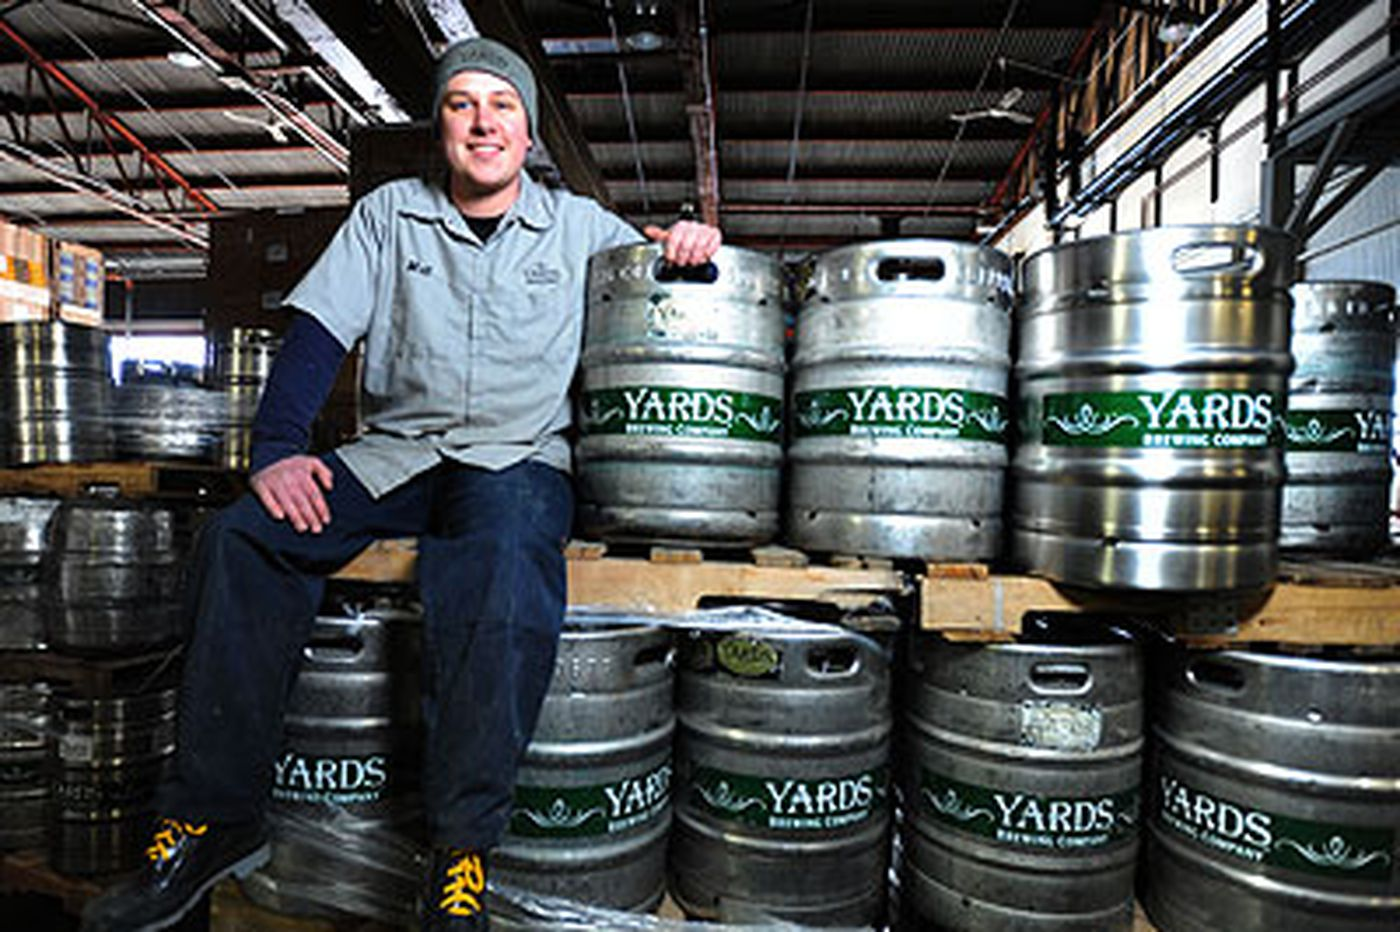 How to build a career in beer